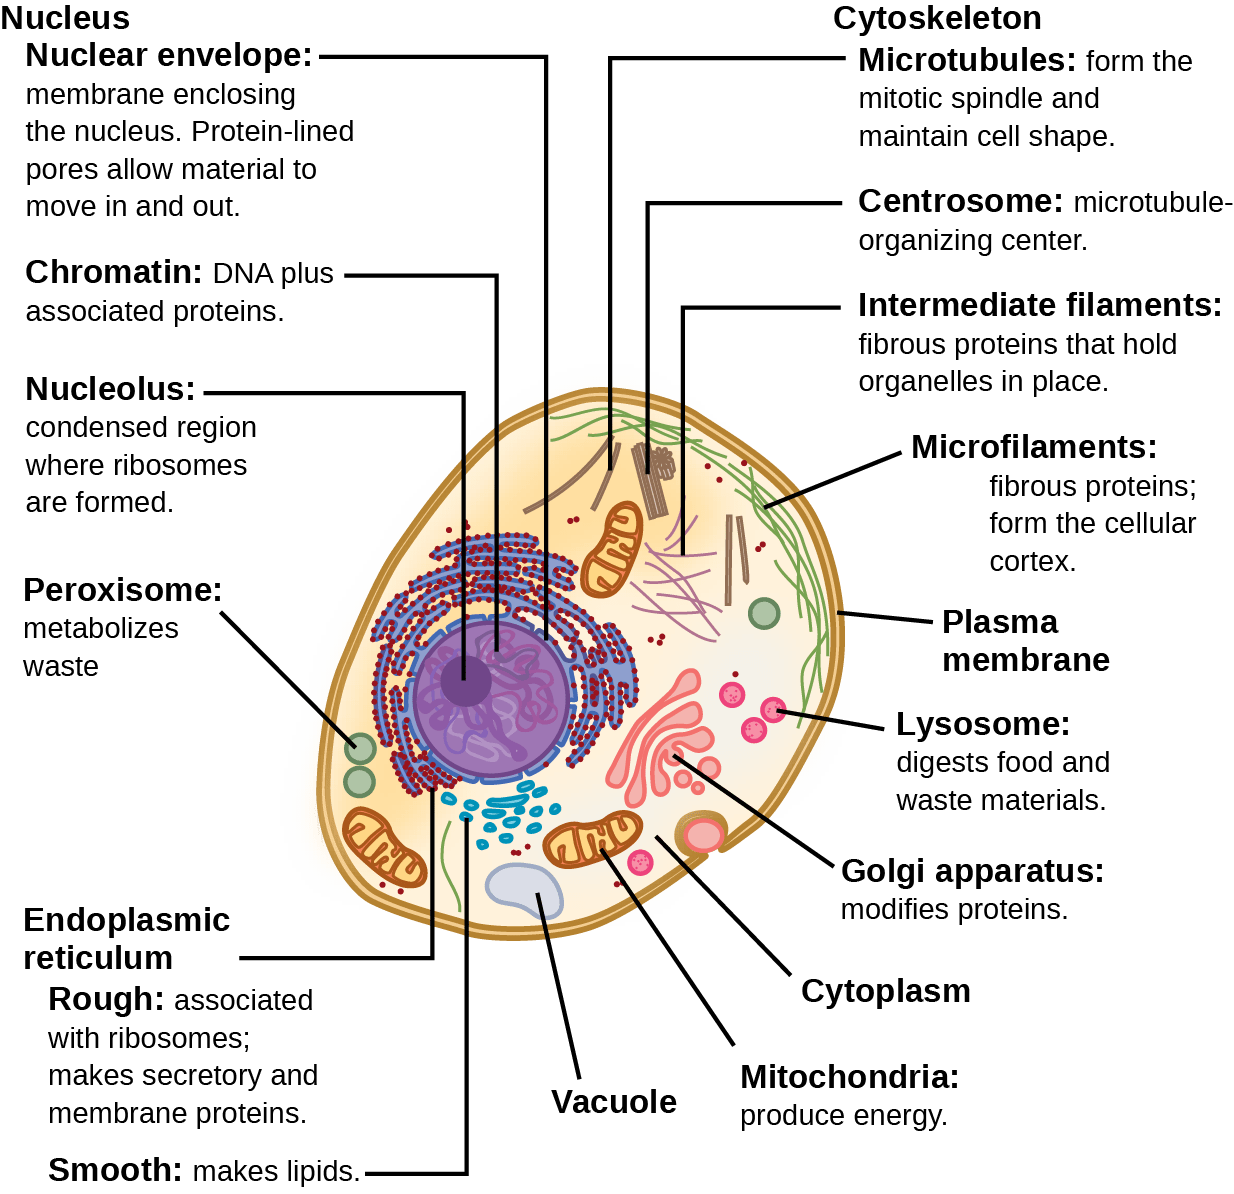 hight resolution of part a this illustration shows a typical eukaryotic animal cell which is egg shaped